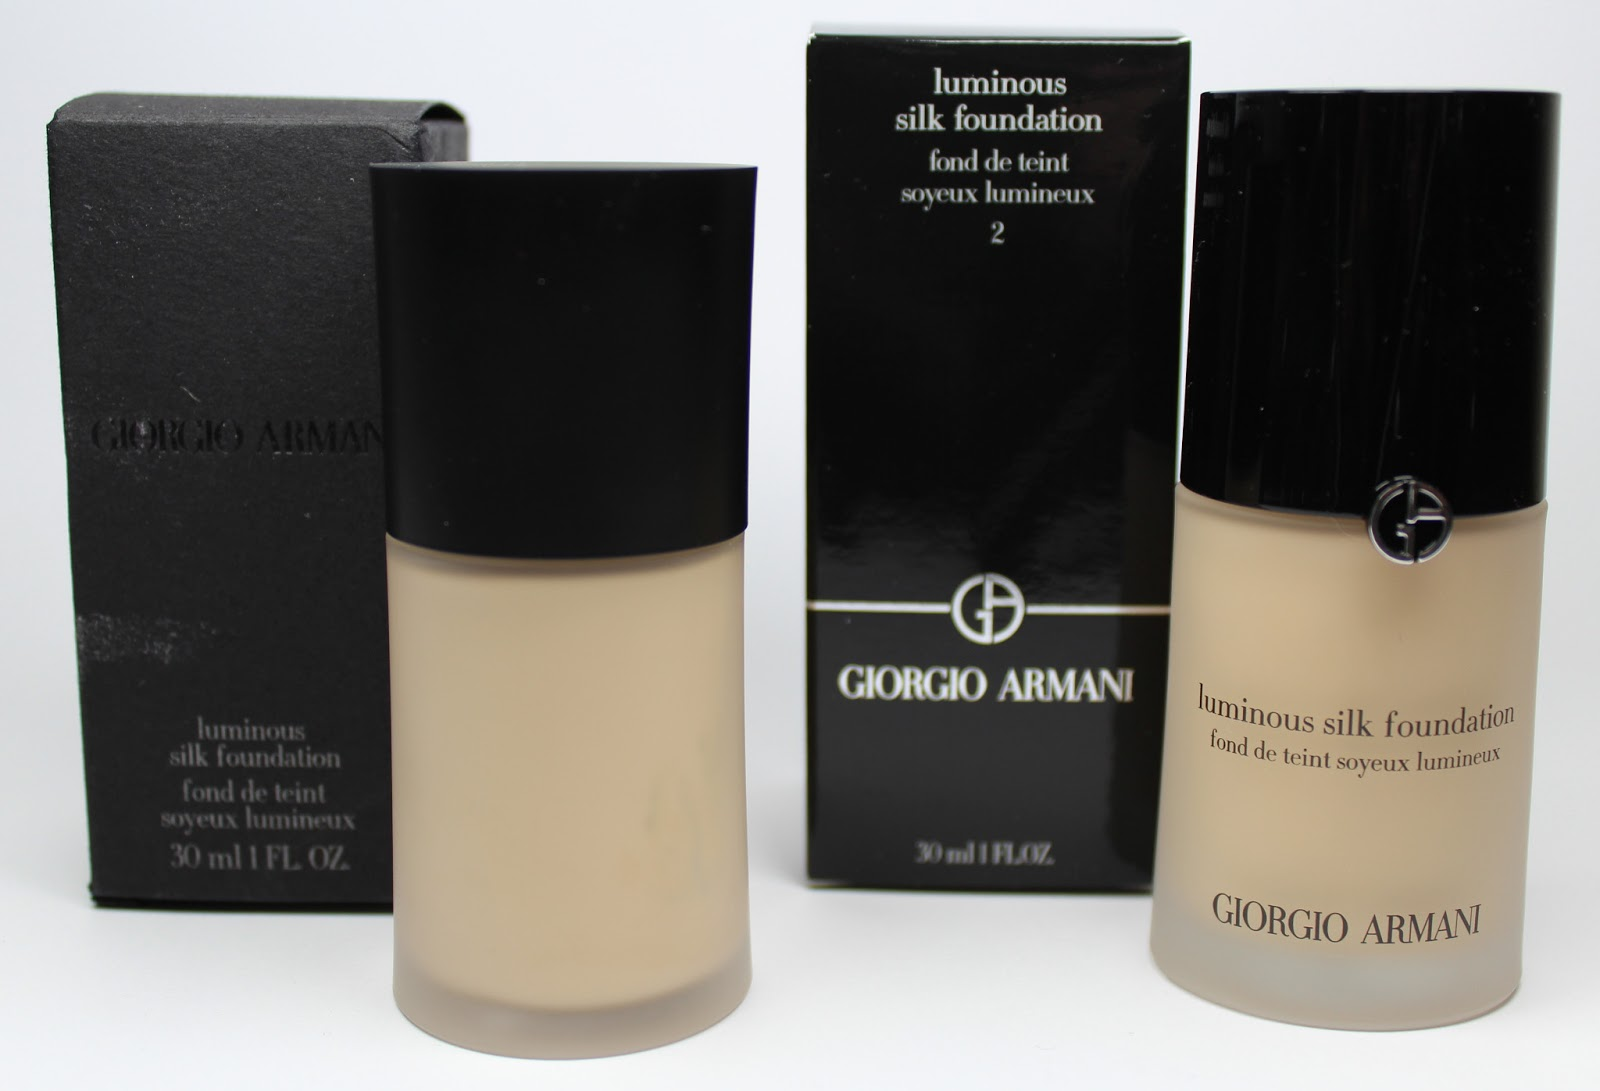 Neues Design für die Giorgio Armani Luminous Silk Foundation + Tages-Make-up mit Produktübersicht